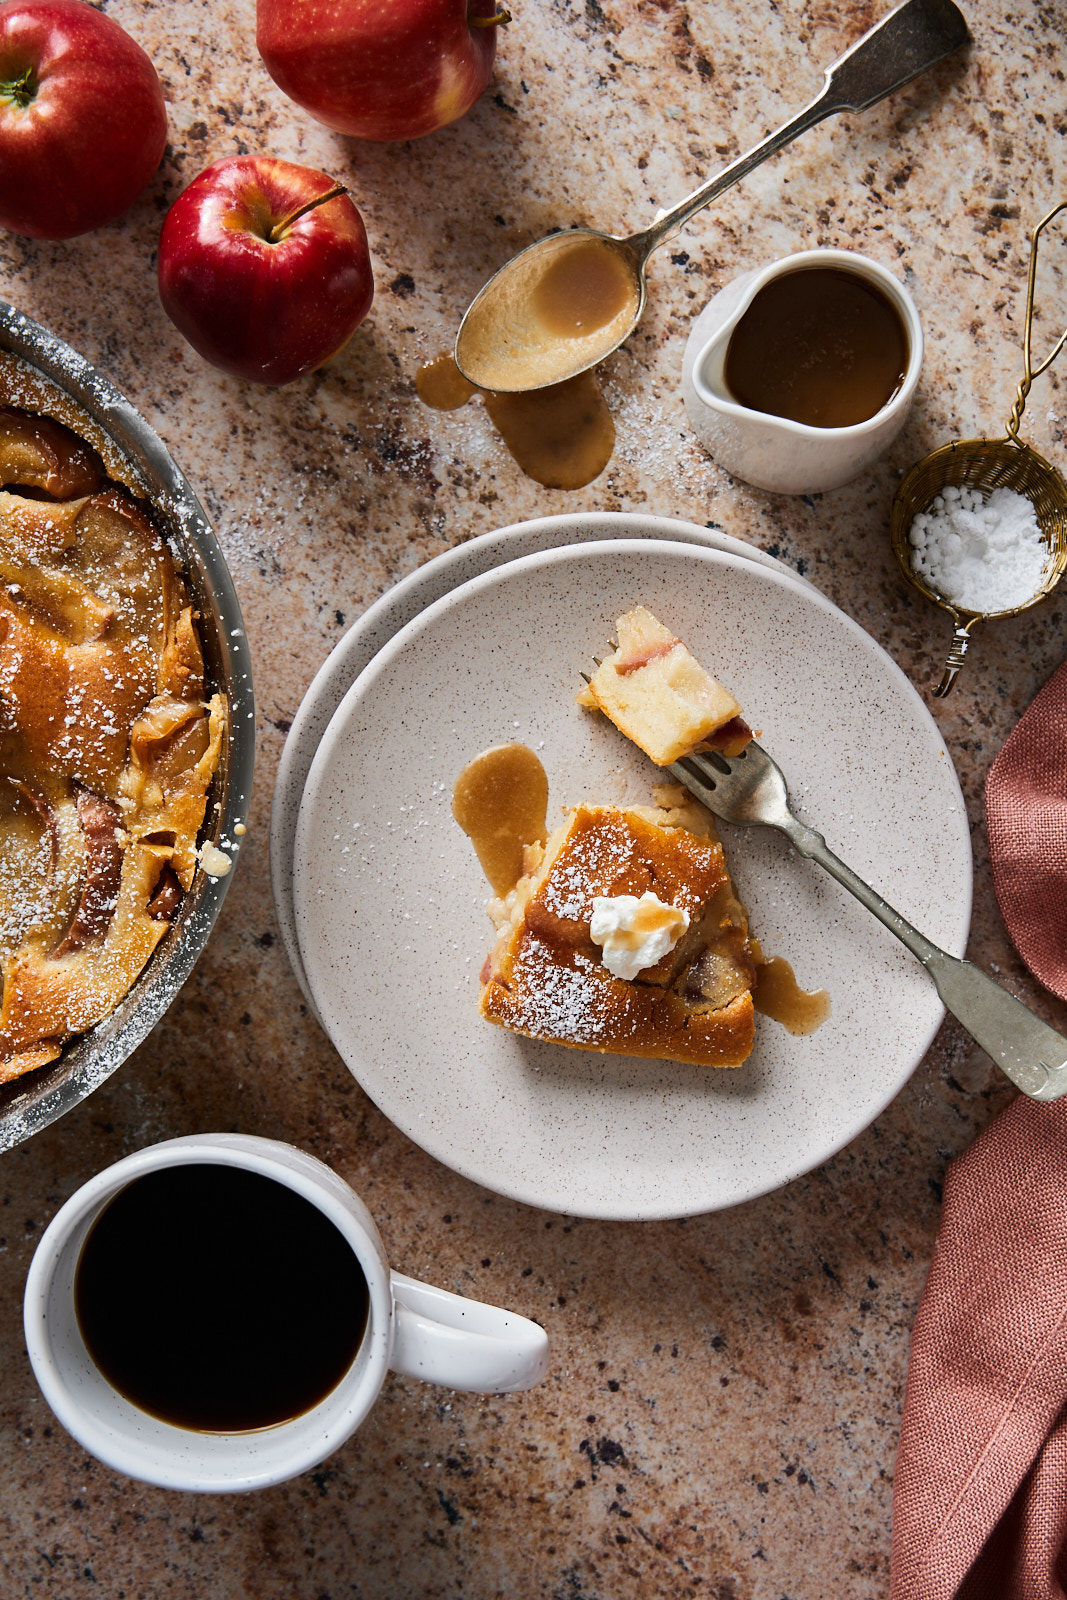 Apple Clafoutis With Caramel Sauce